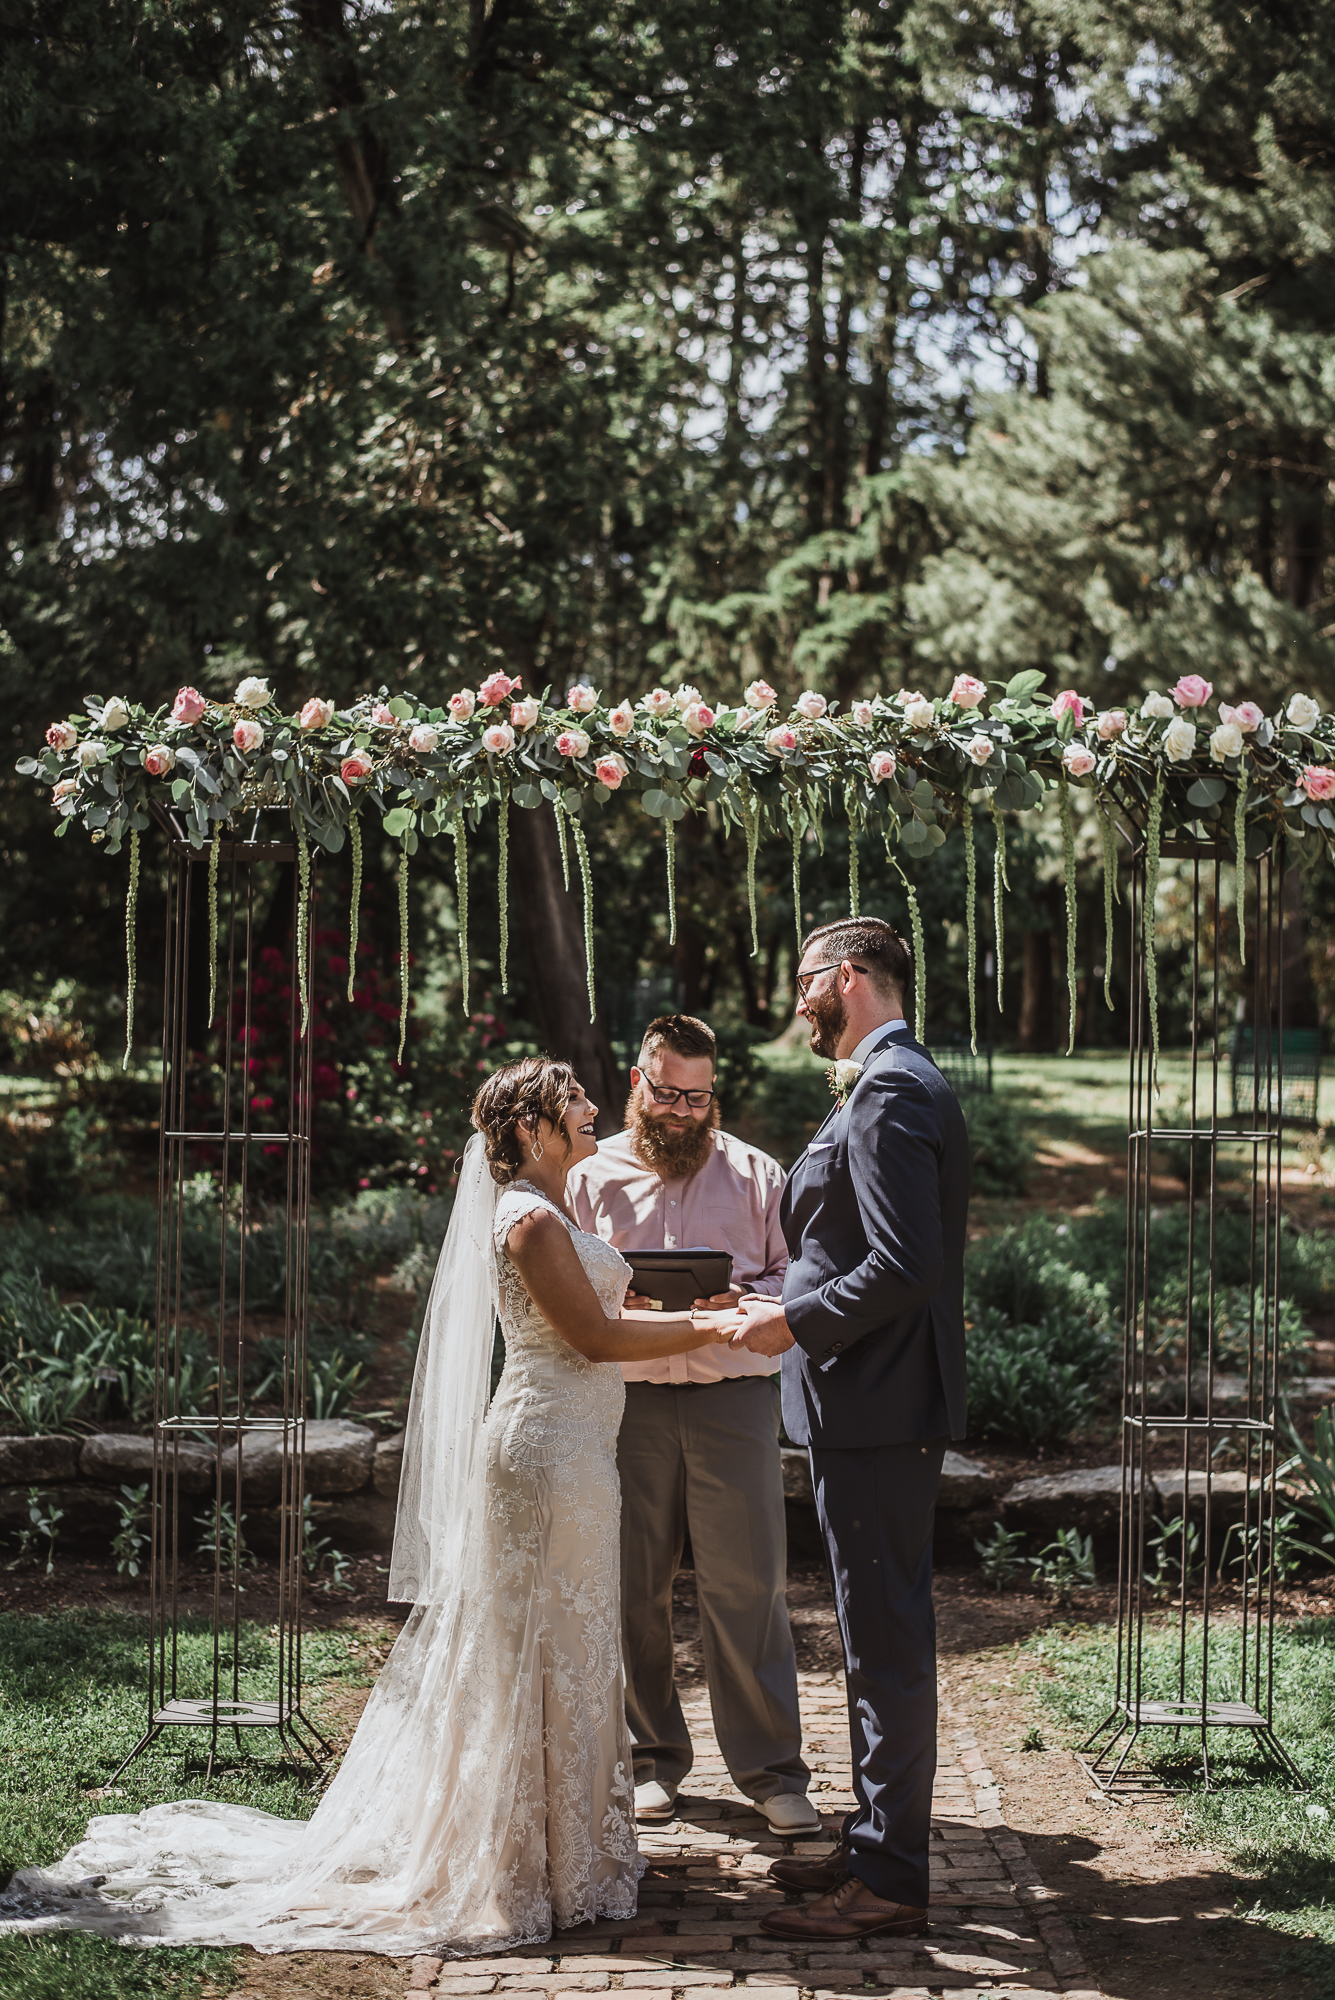 Melissa Cervantes Photography _ Kelsey + Ben Junebug Weddings Submission-58.jpg